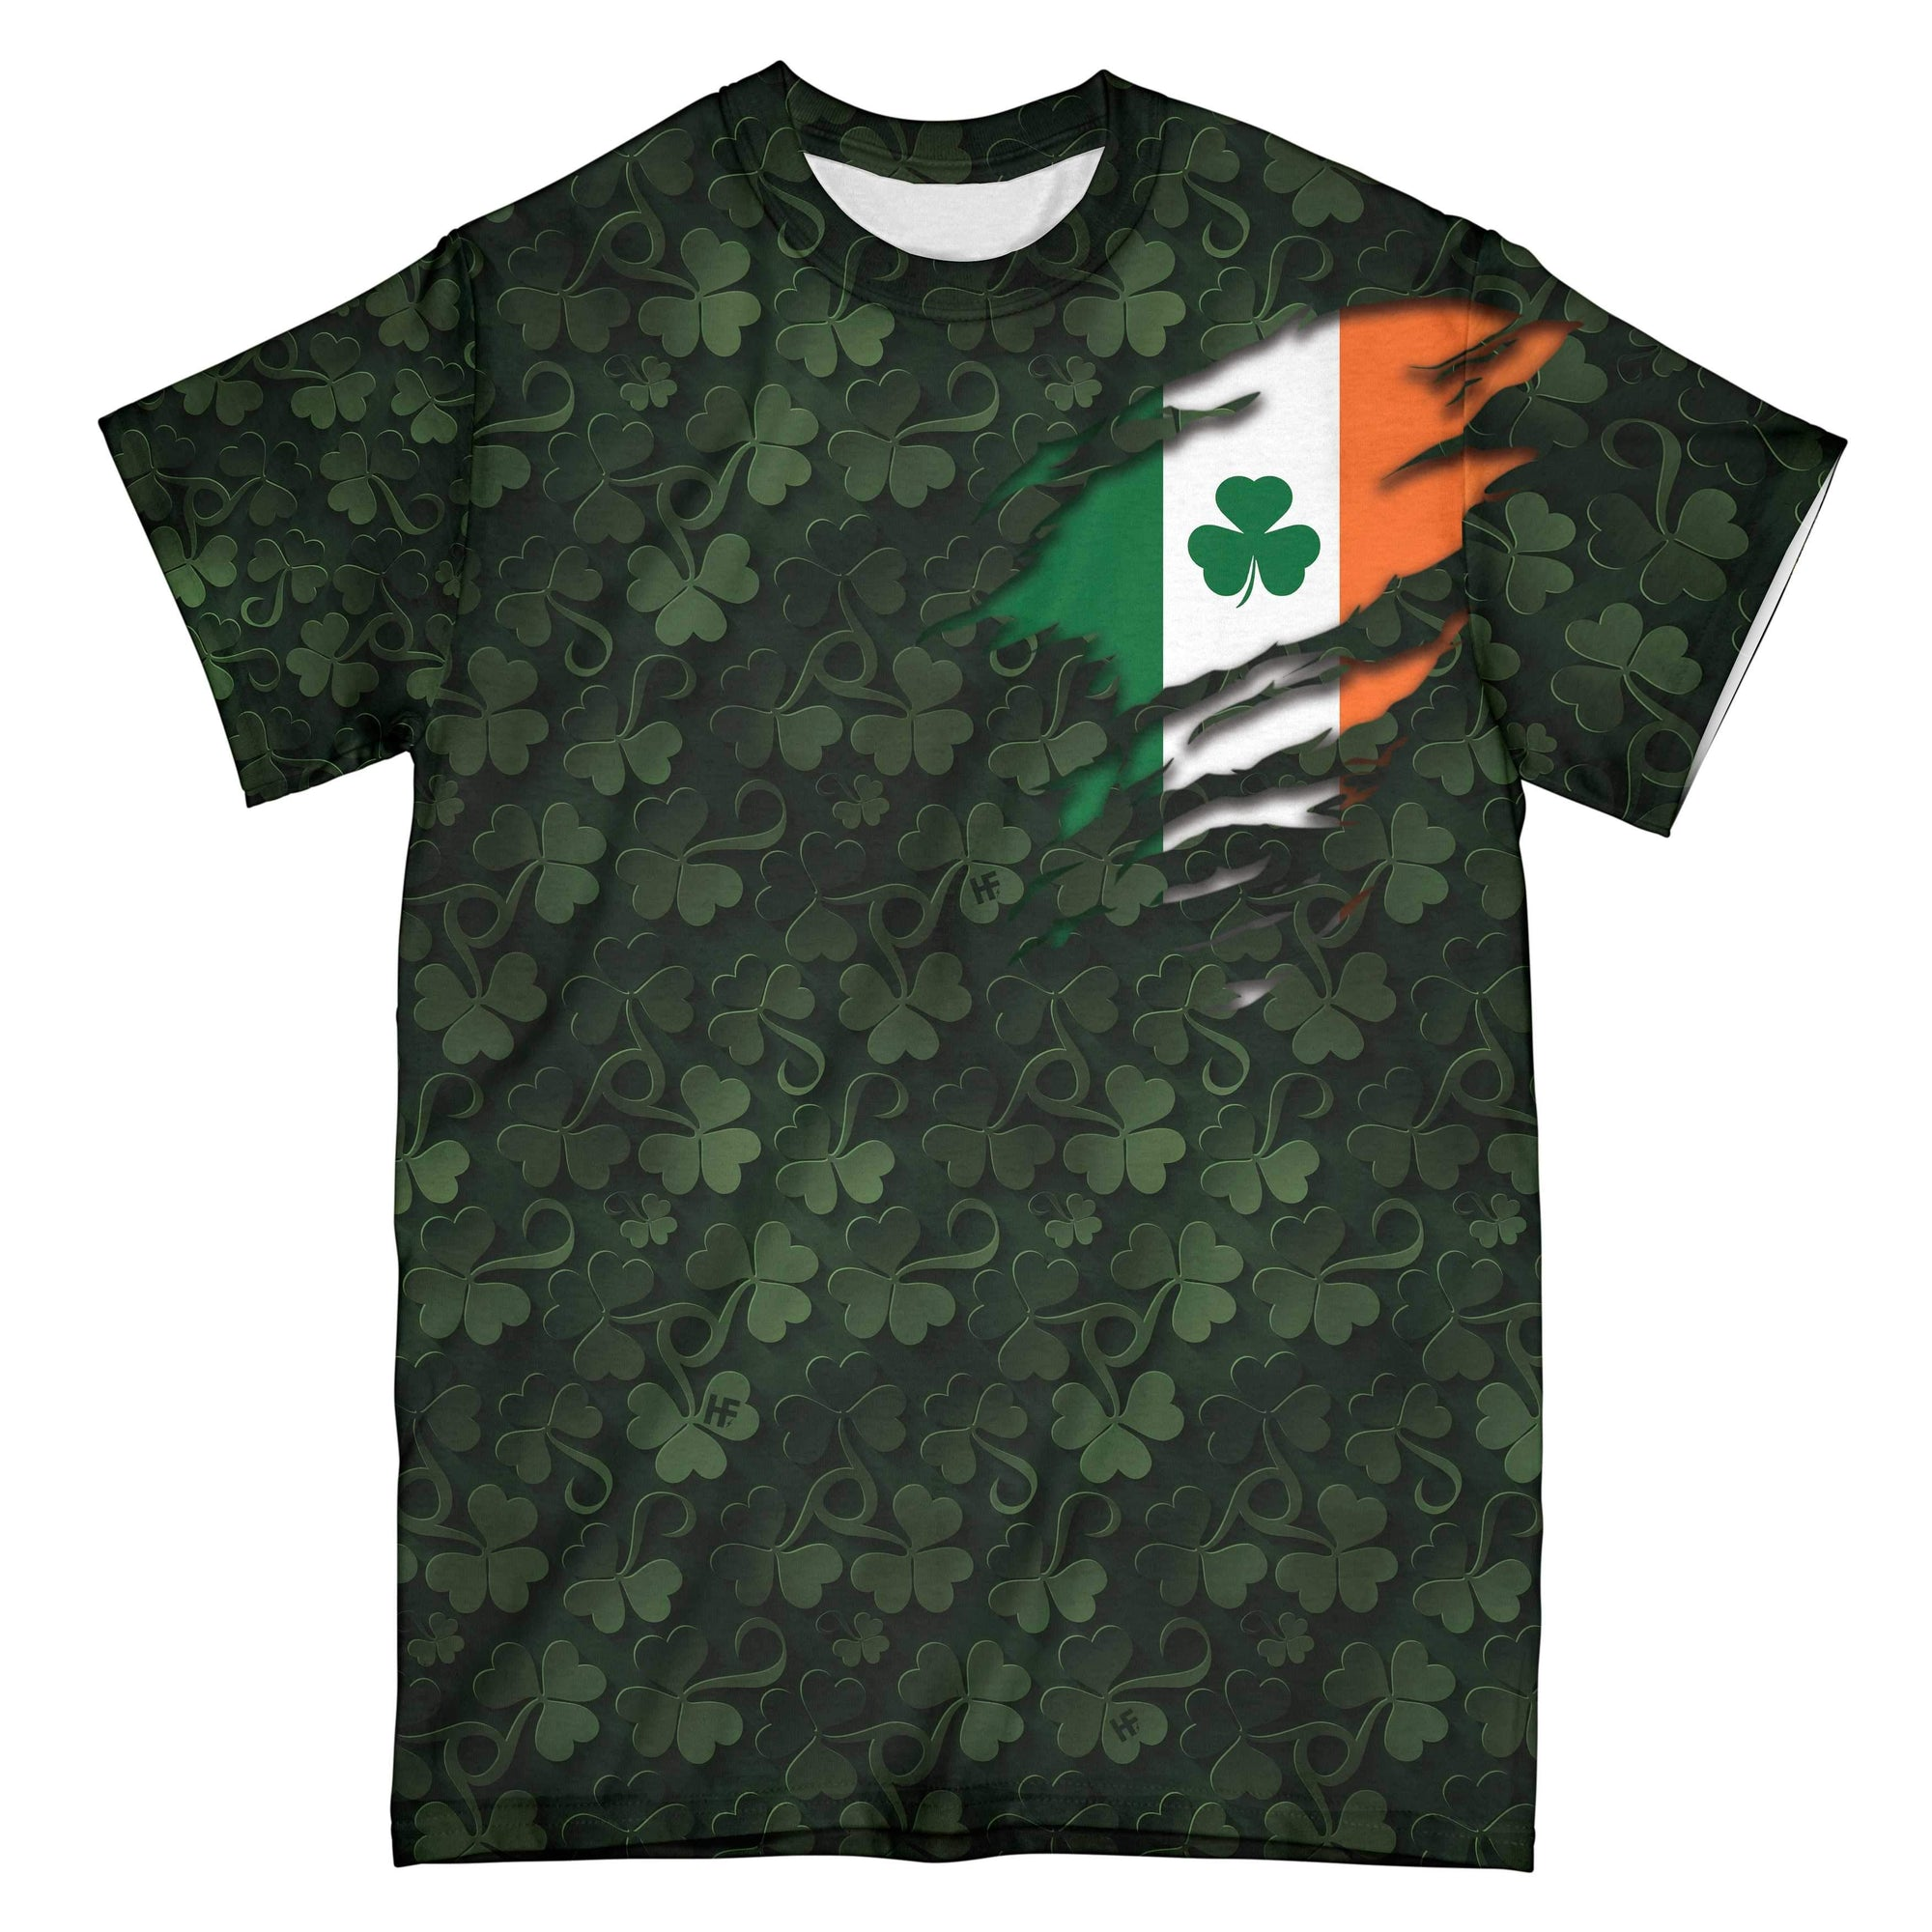 Irish By The Grace Of God Shamrock EZ12 2601 All Over Print T-shirt